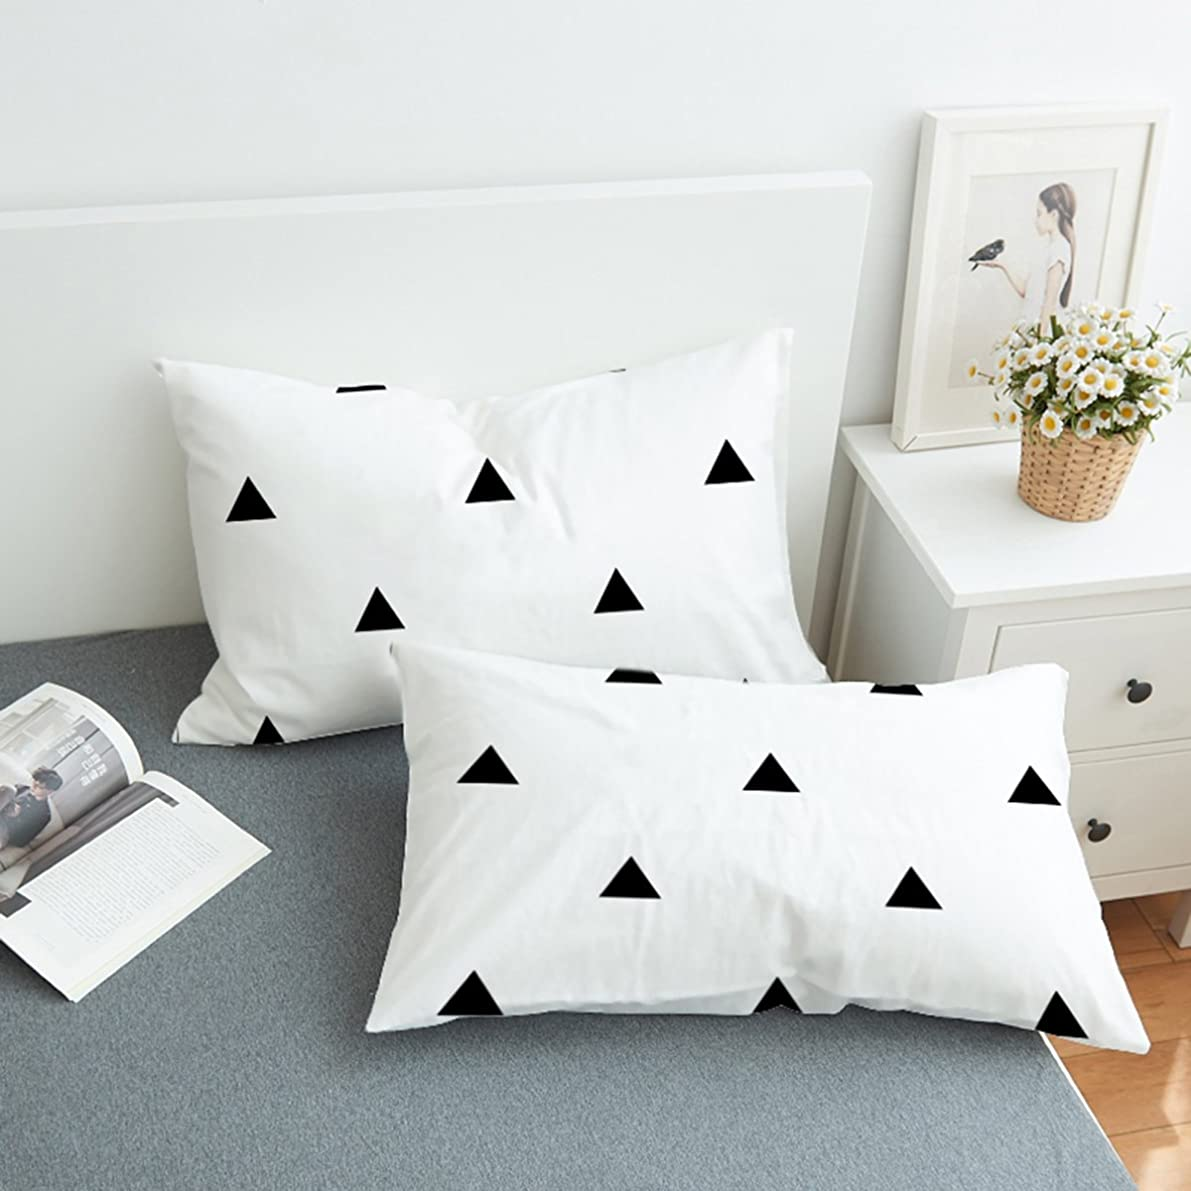 Koongso Black and White Triangle Print Bedding Pillowcase Zipper Closure for Home D¨|cor Standard/King Size